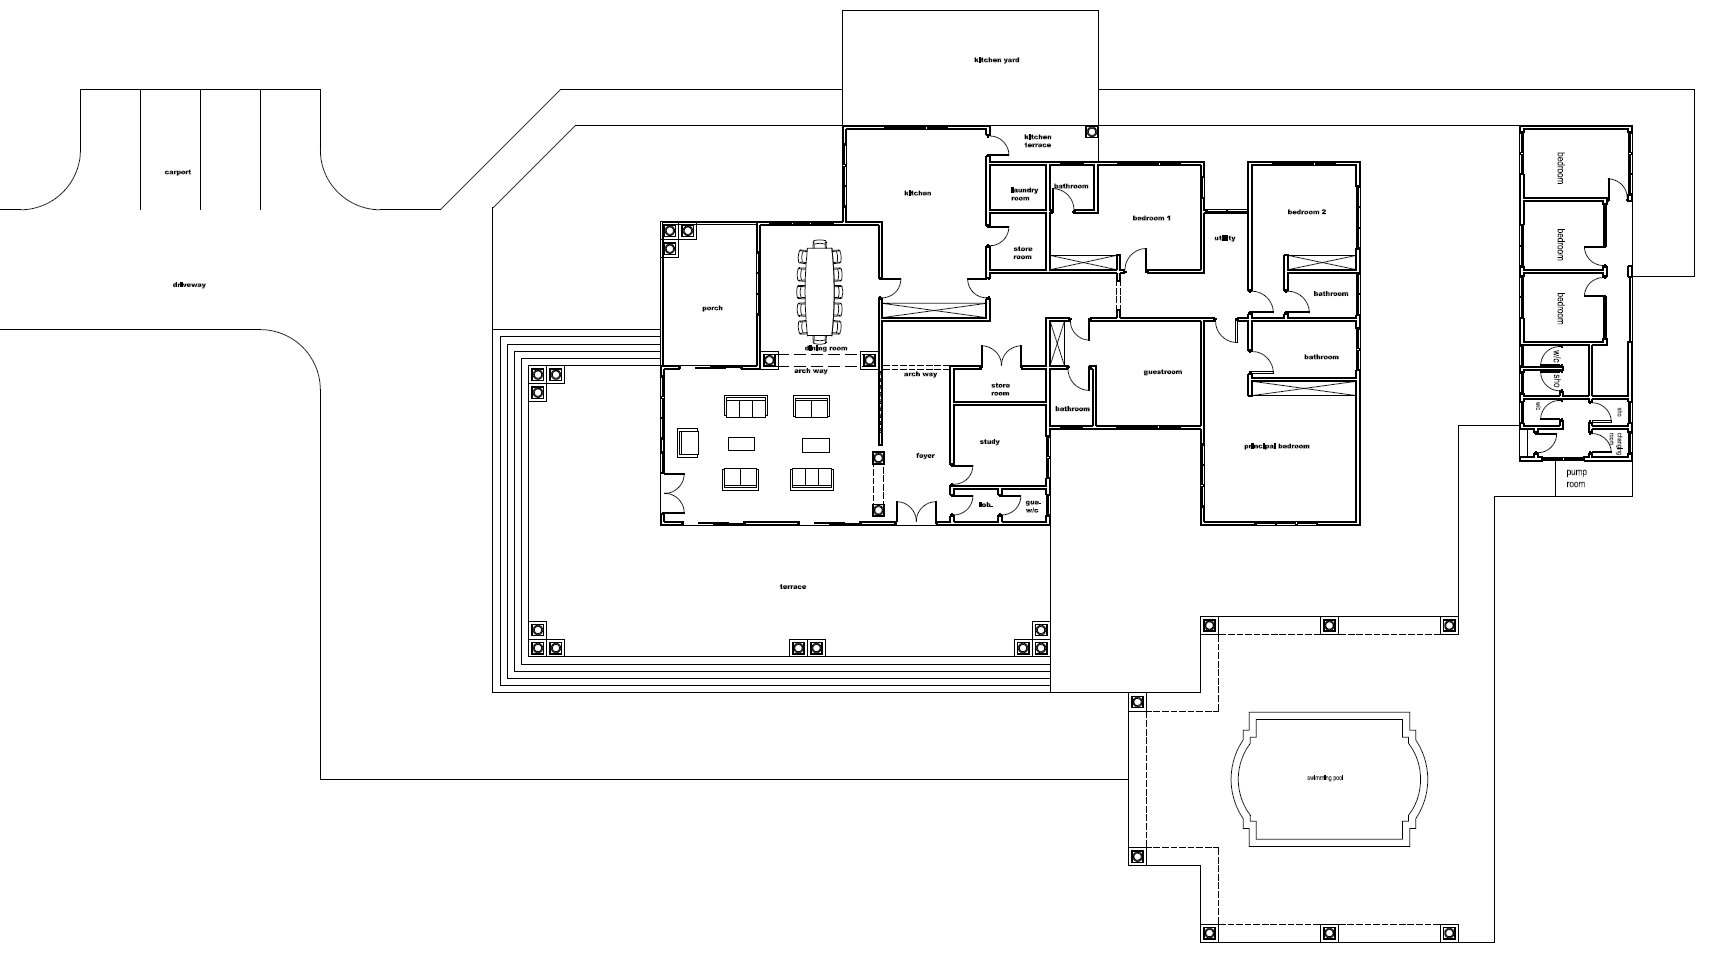 Ghana house plans daavi house plan House layout plan